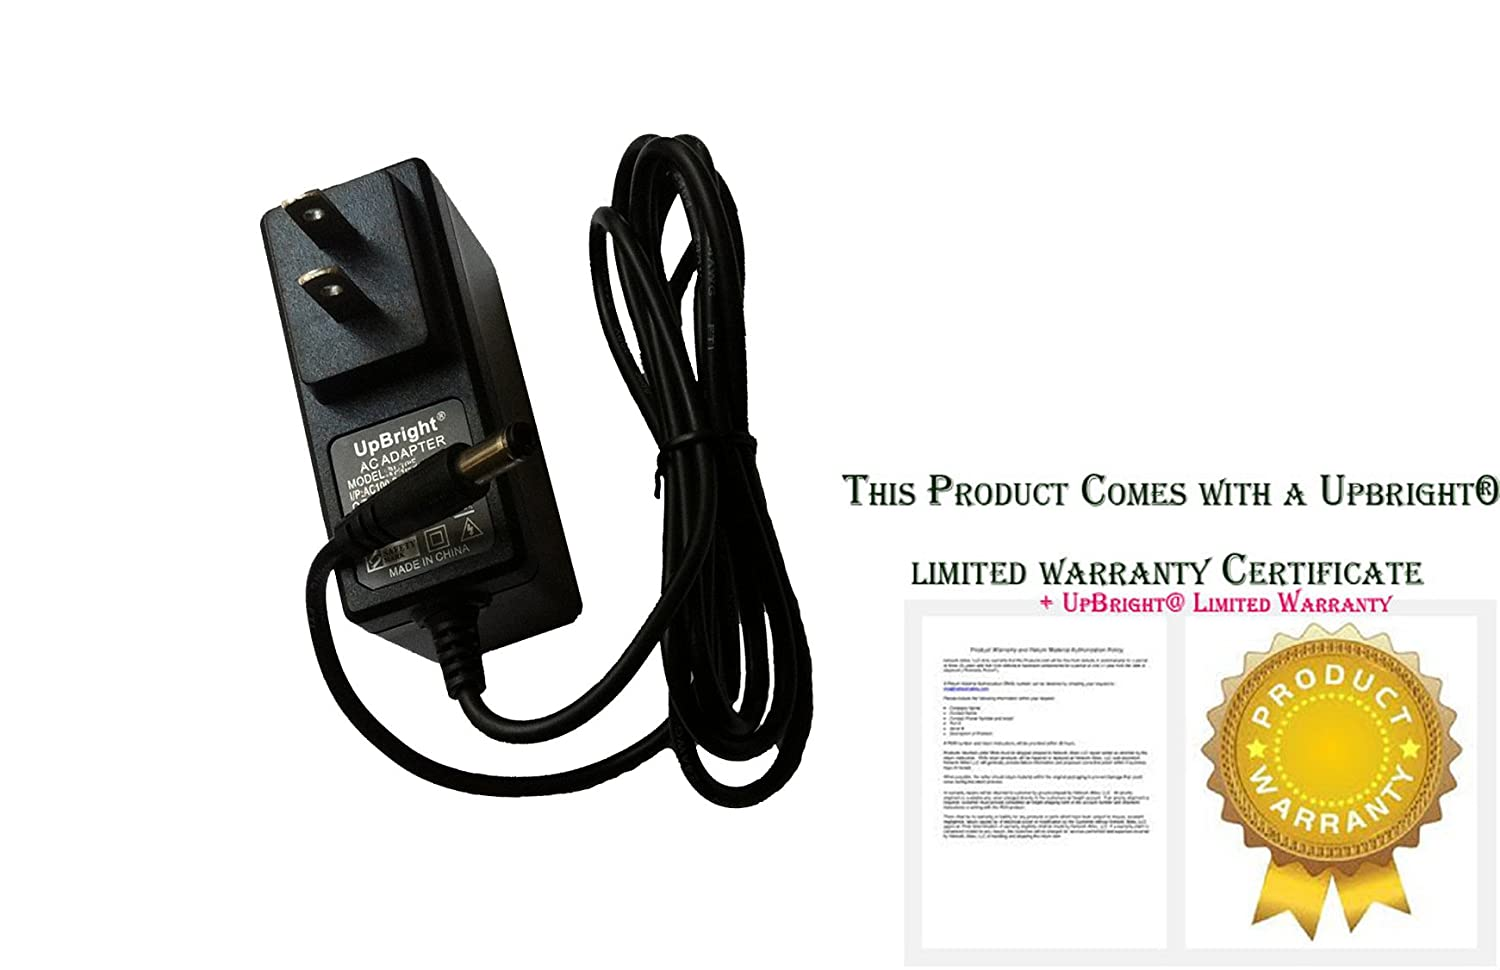 UpBright NEW AC/DC Adapter For Shark SV1106 N 40 10.8Vdc Bagless Navigator Freestyle Cordless Stick Vac Household Vacuum Cleaner Power Supply Cord Battery Charger with Barrel Round Plug Tip